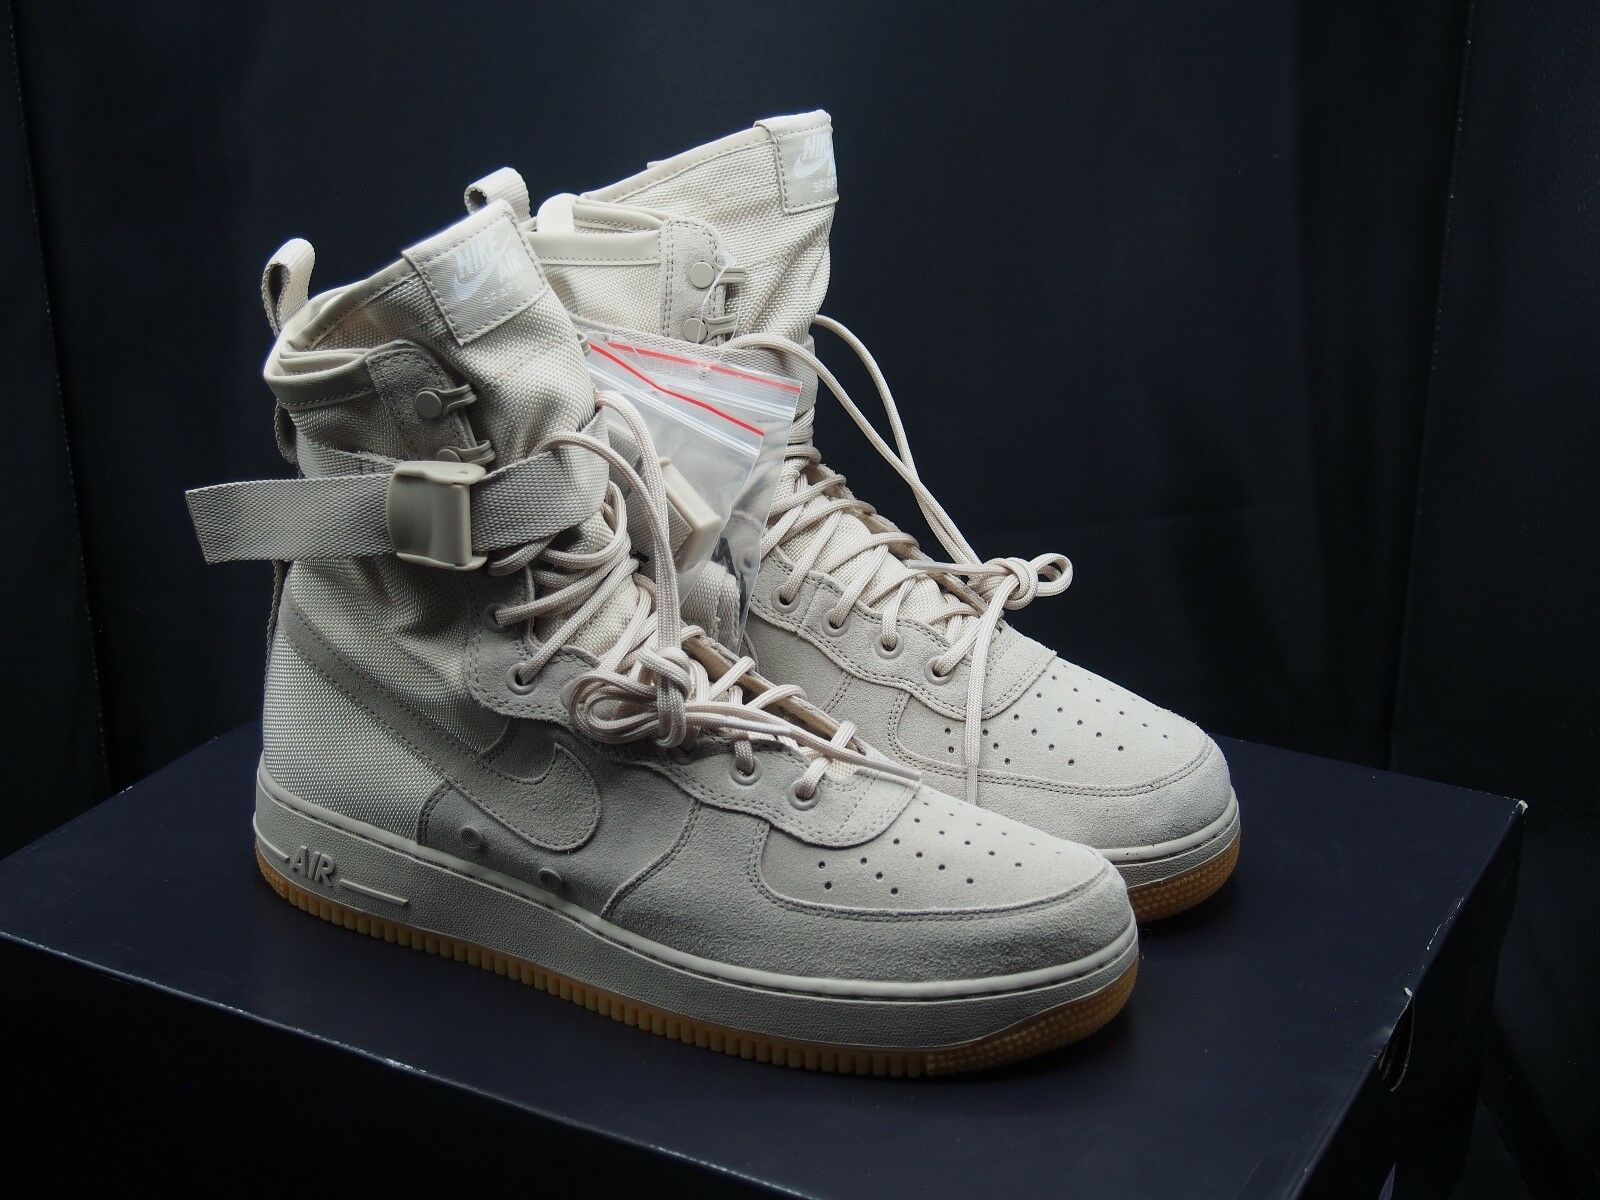 Nike sf af1 speciale campo air force 1 serie 864024-200